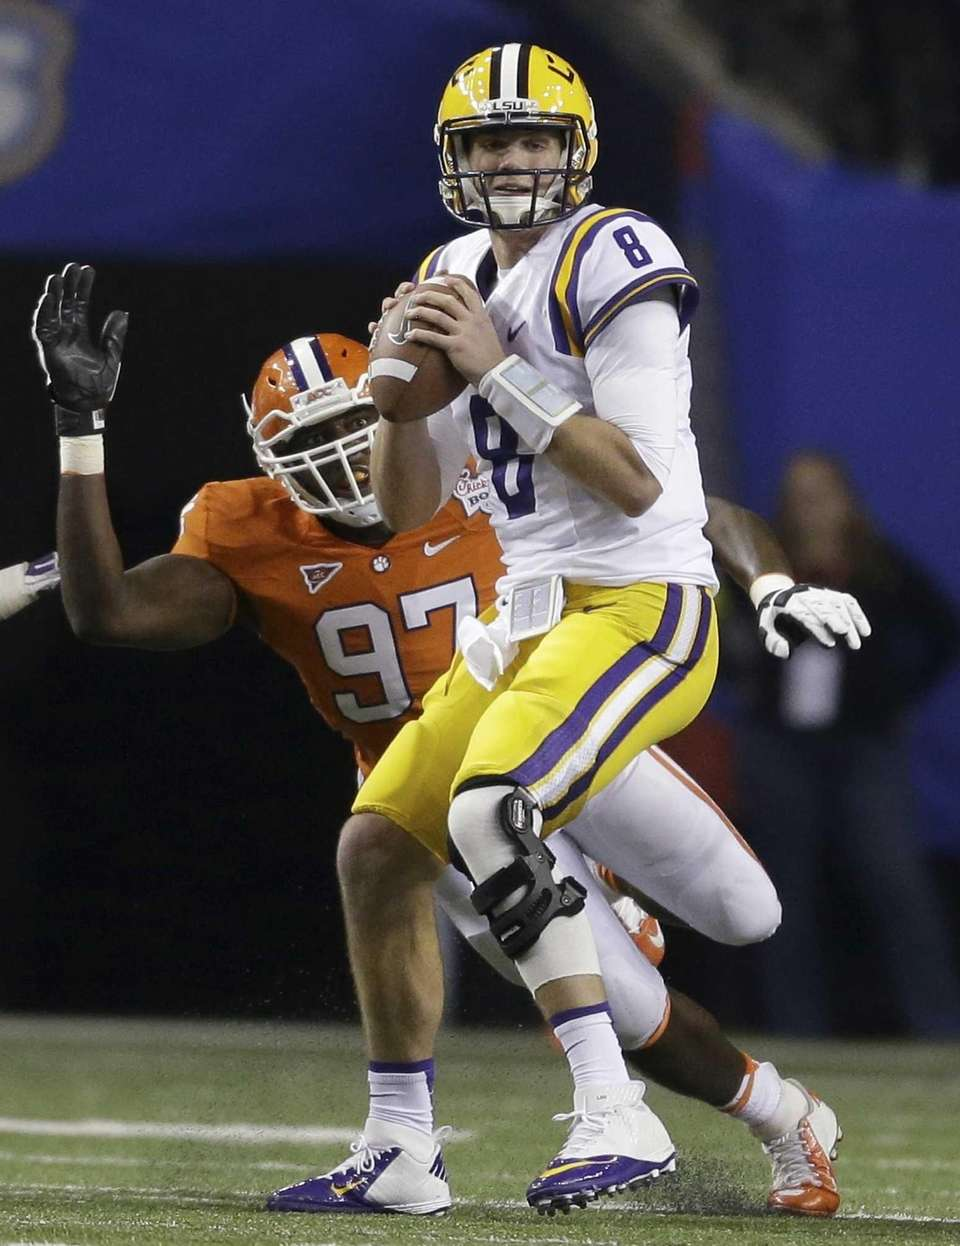 LSU quarterback Zach Mettenberger prepares to pass the